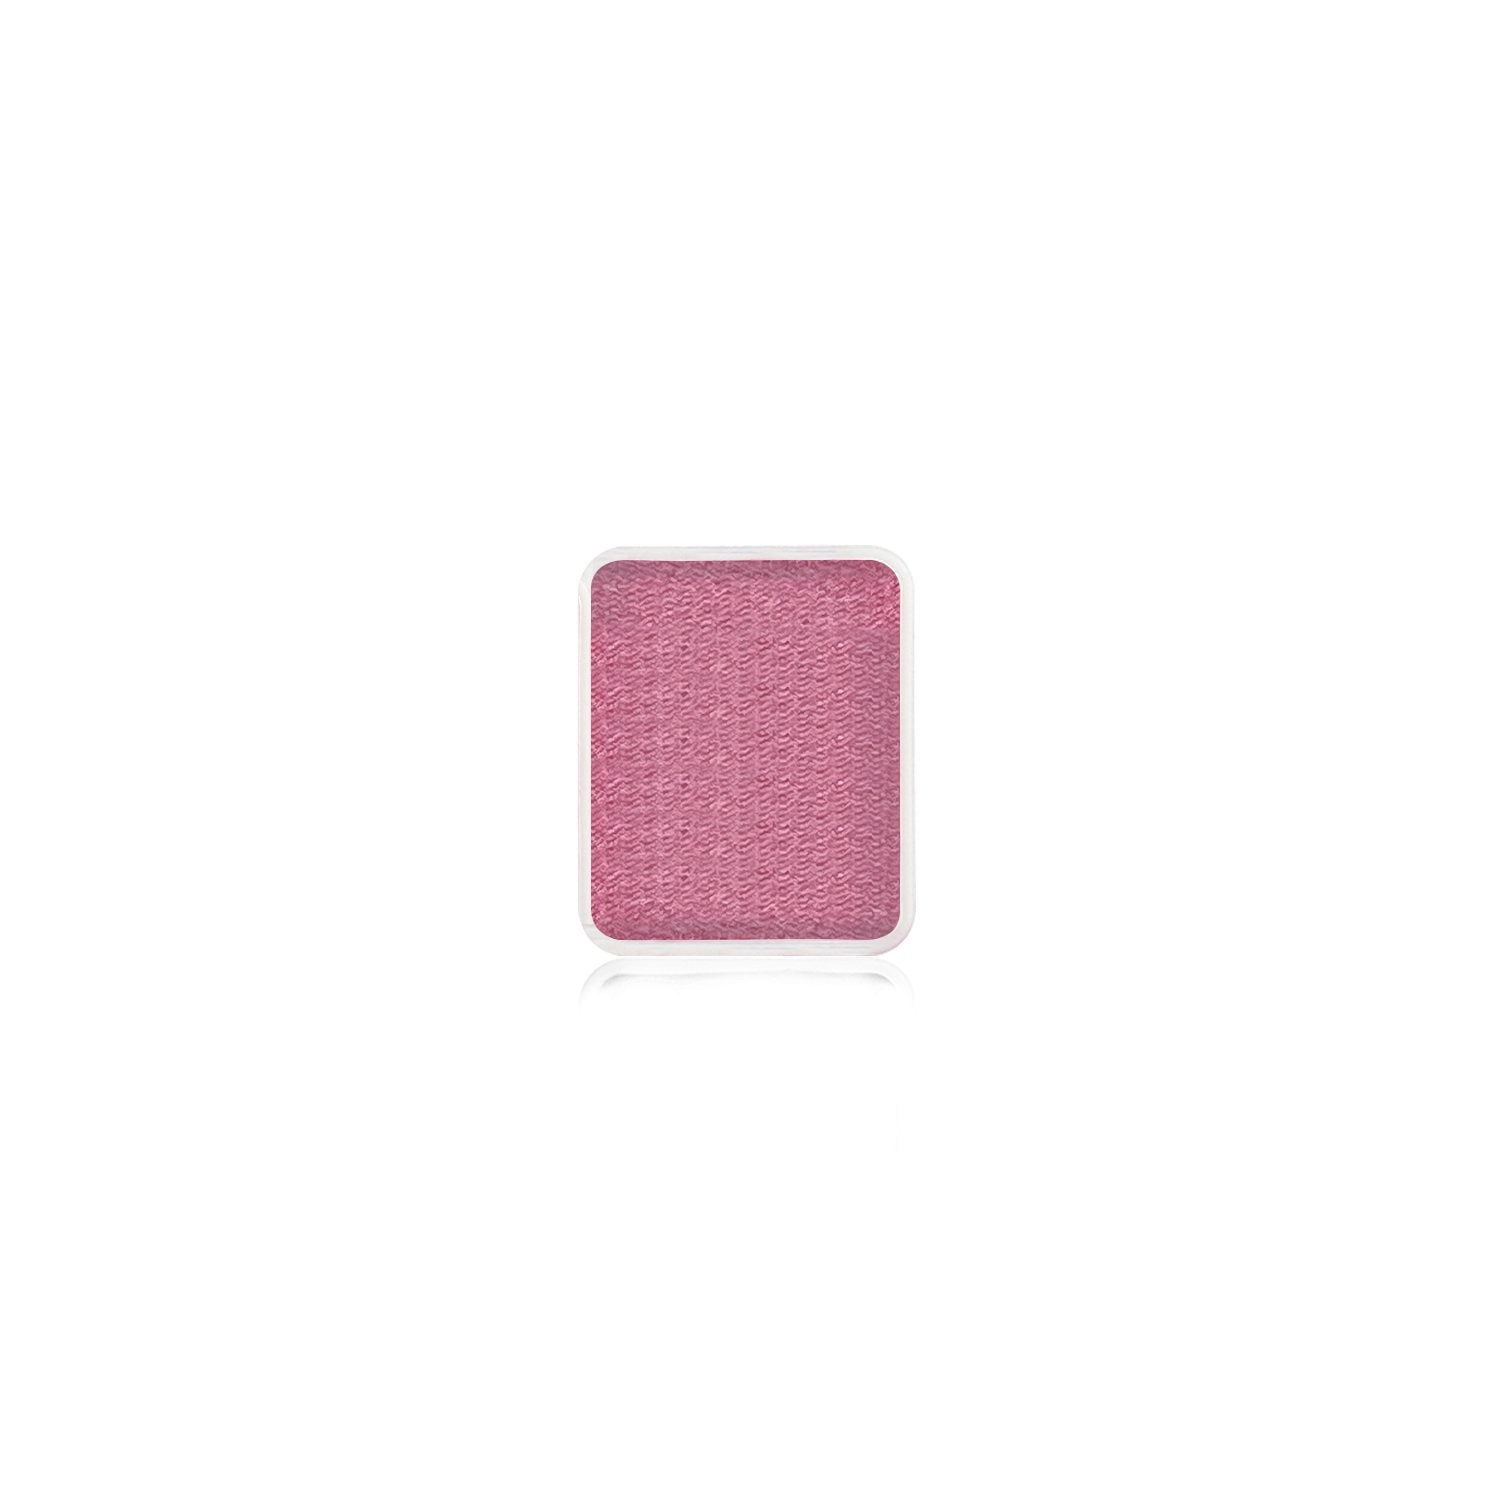 Kraze FX Face Paint Palette Refill - Metallic Rose  (0.21 oz/6 gm)